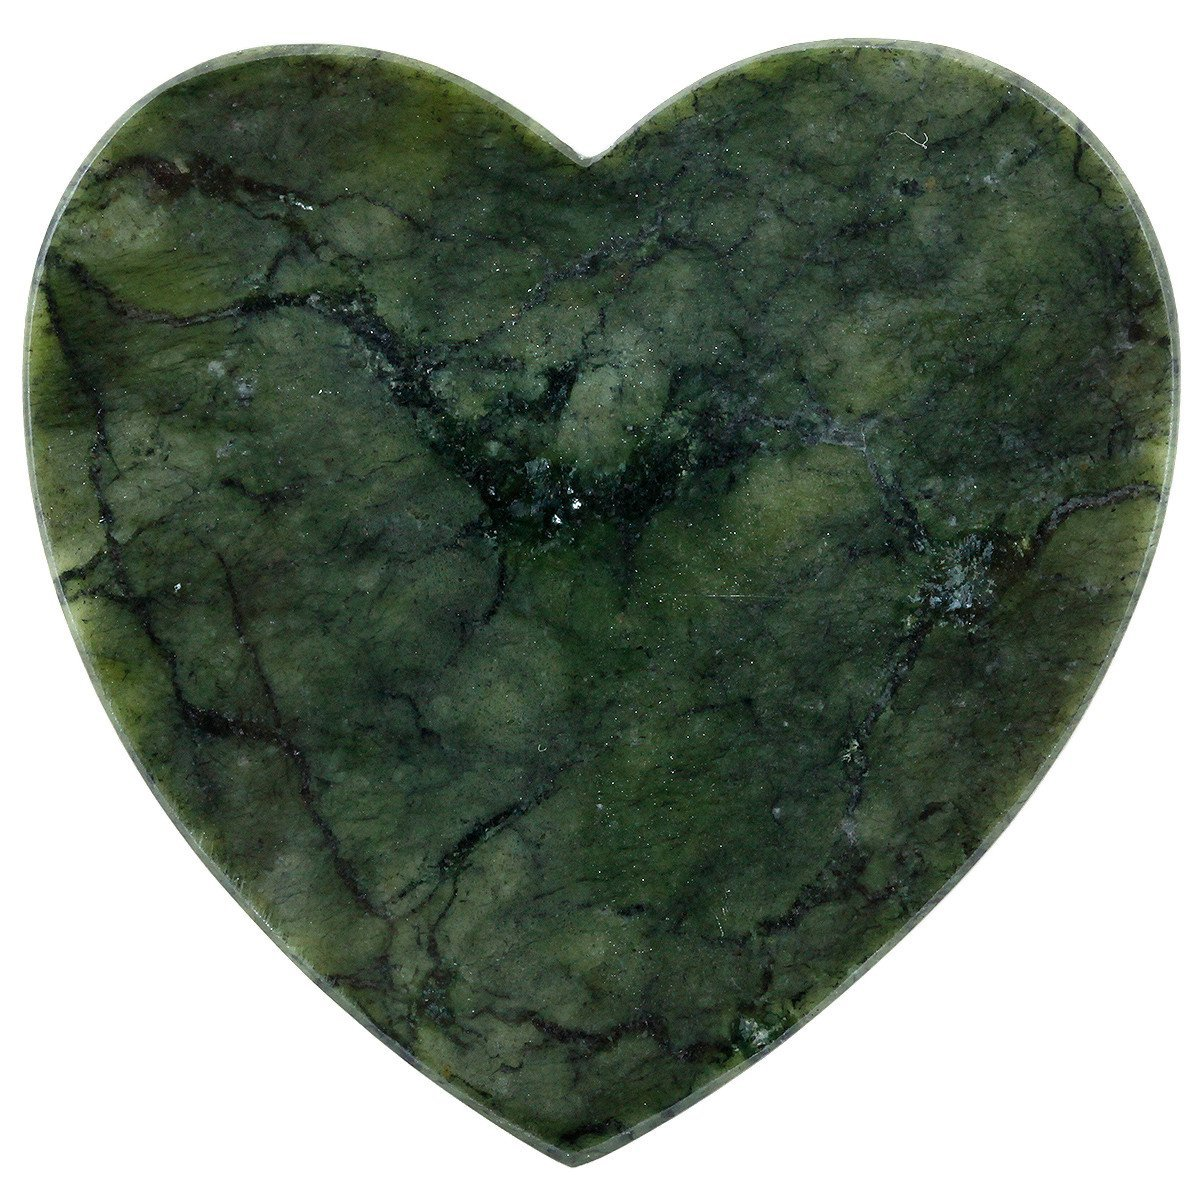 mookaitedecor Green Jade Slice Stone, Heart Shape Place Cards Slab Stones for Wedding Healing Crystal Home Decor